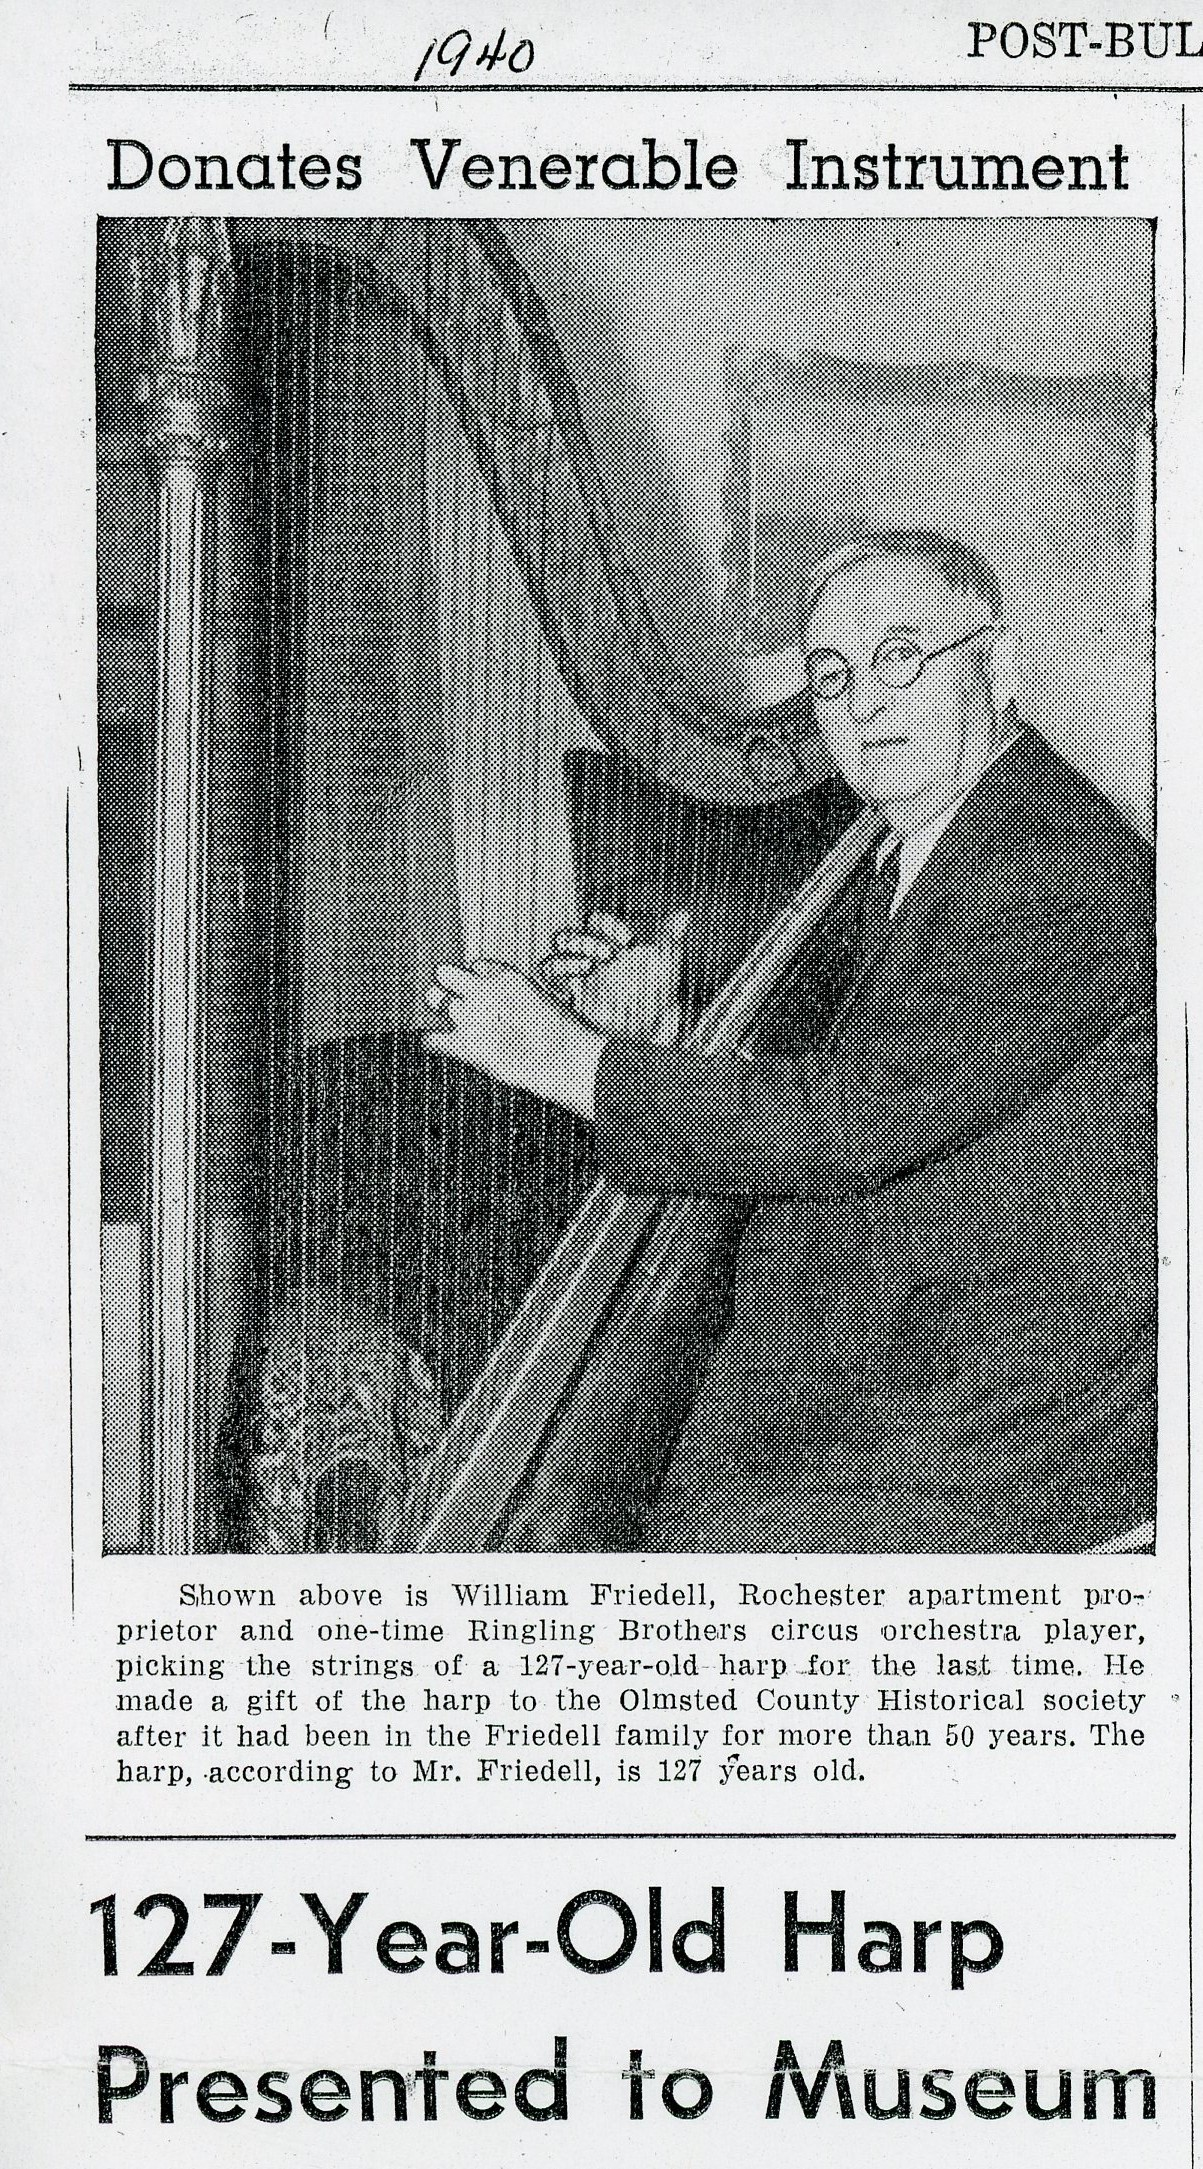 Post-Bulletin clipping from 1940